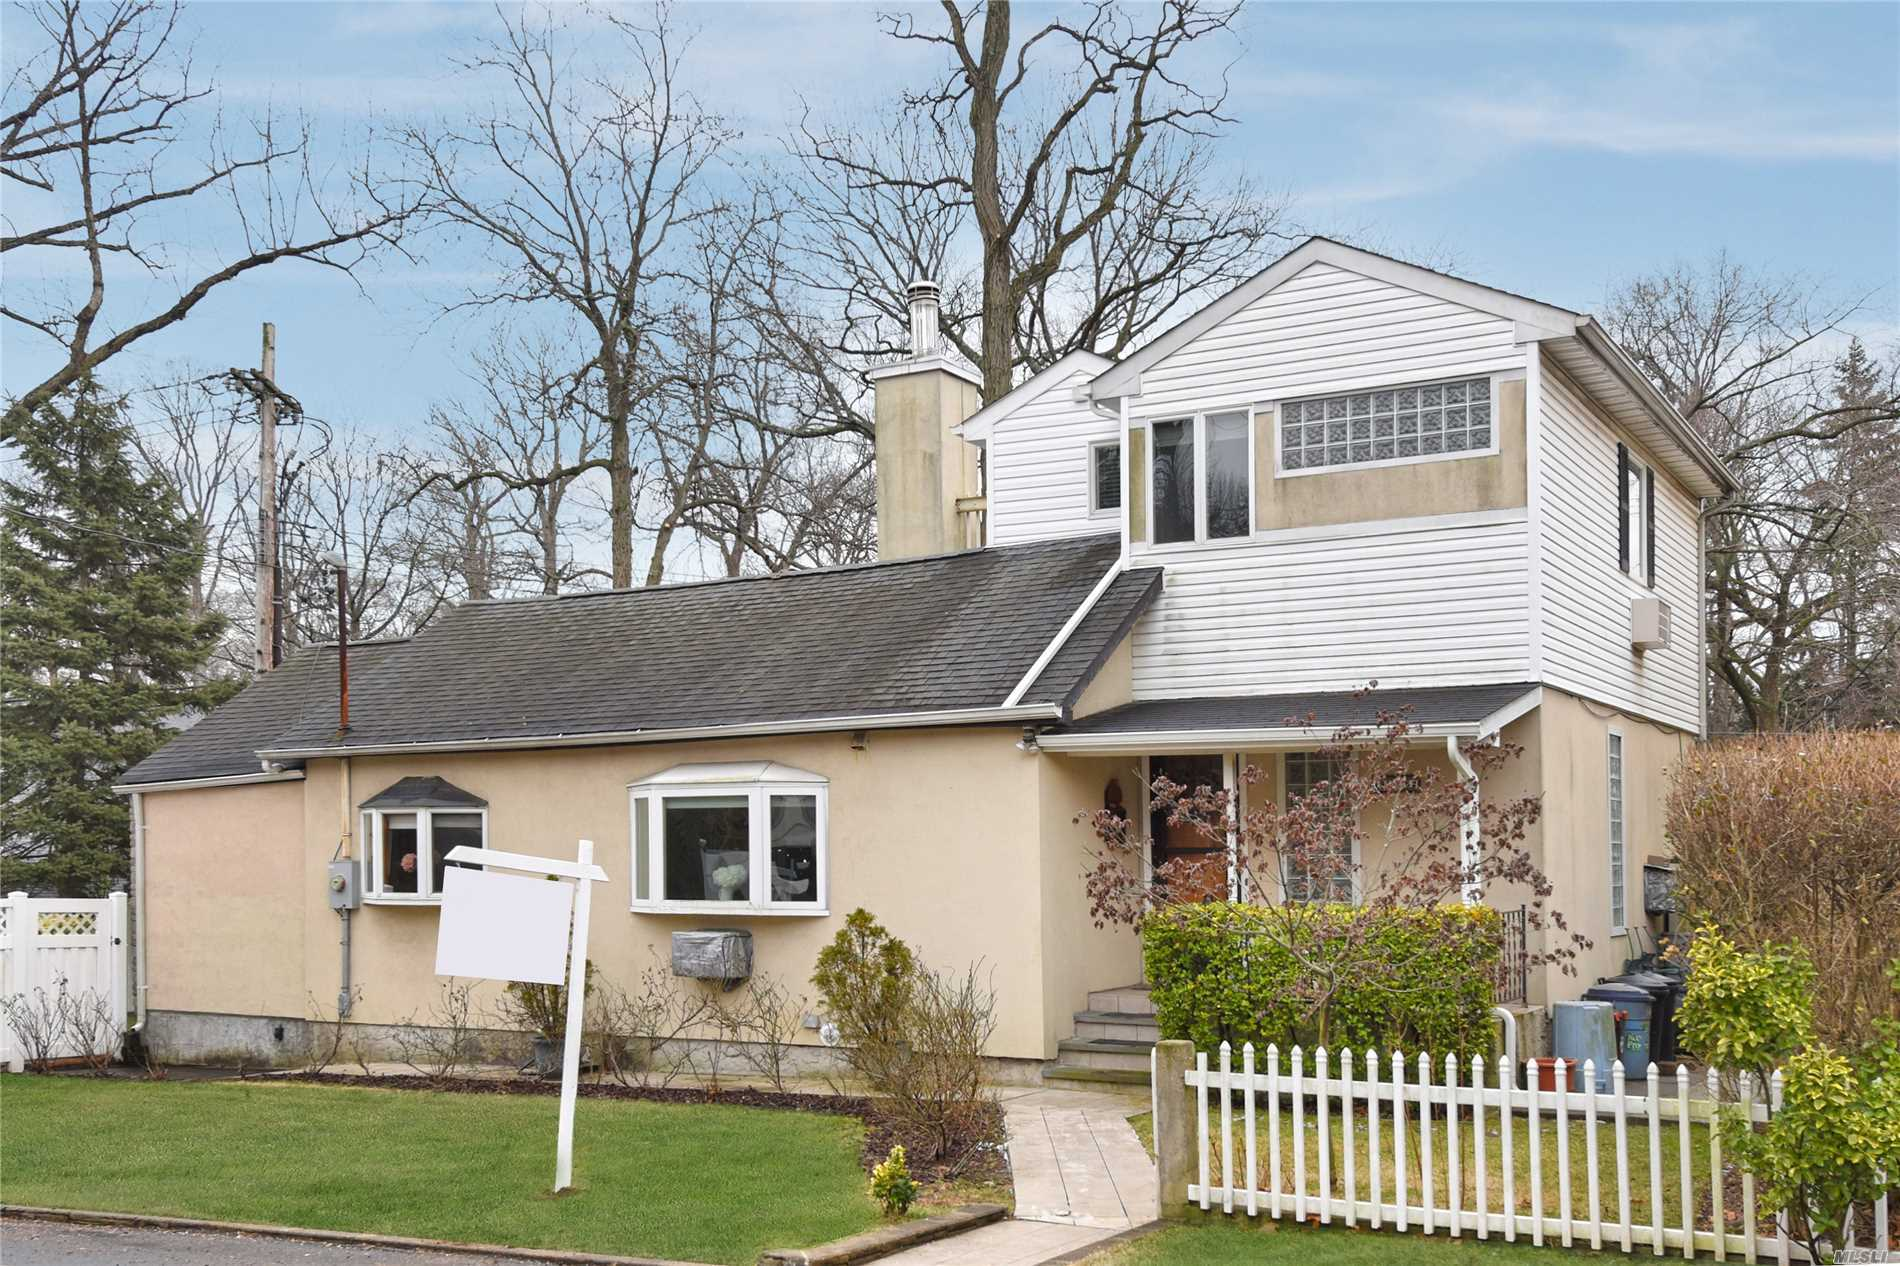 Just Arrived- Immaculate, Bright & Cozy Home In Beautiful Holliswood Neighborhood. Just Pack Your Bags And Move Right In! Many Upgrades Include-New Windows, Renovated Bathrooms; New Boiler (2 Years Old); Fenced-In Yard; Extension Added In 2002;Convenient To Synagogue; Q17 To #7 Train; F Train; P.S.178.